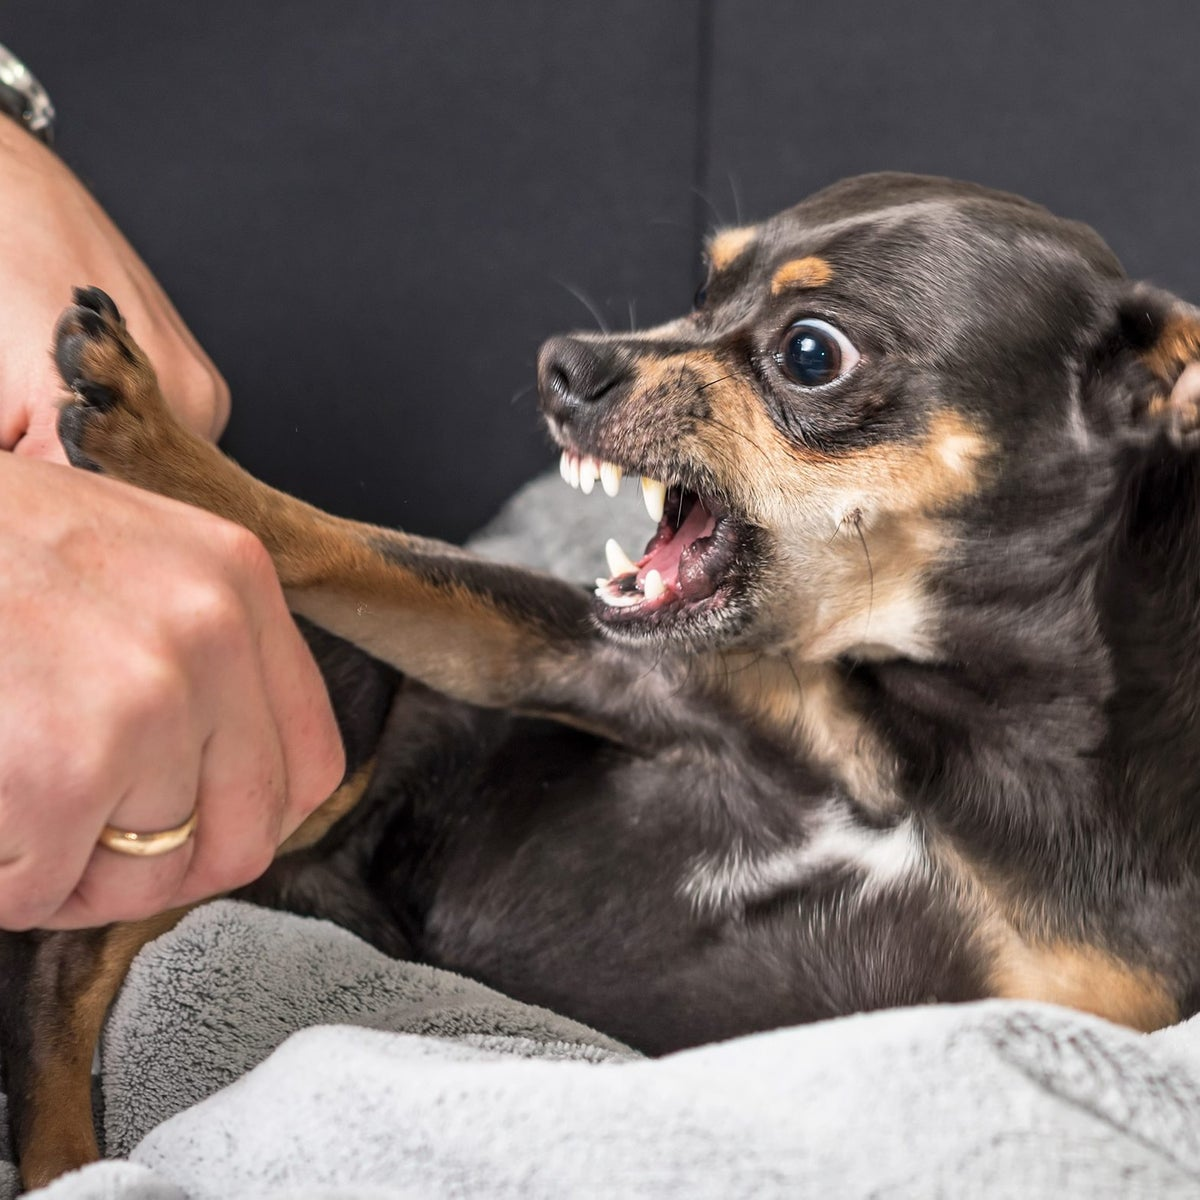 Picture shows man's hands on left and snarling chihuahua on right. His ears are flattened